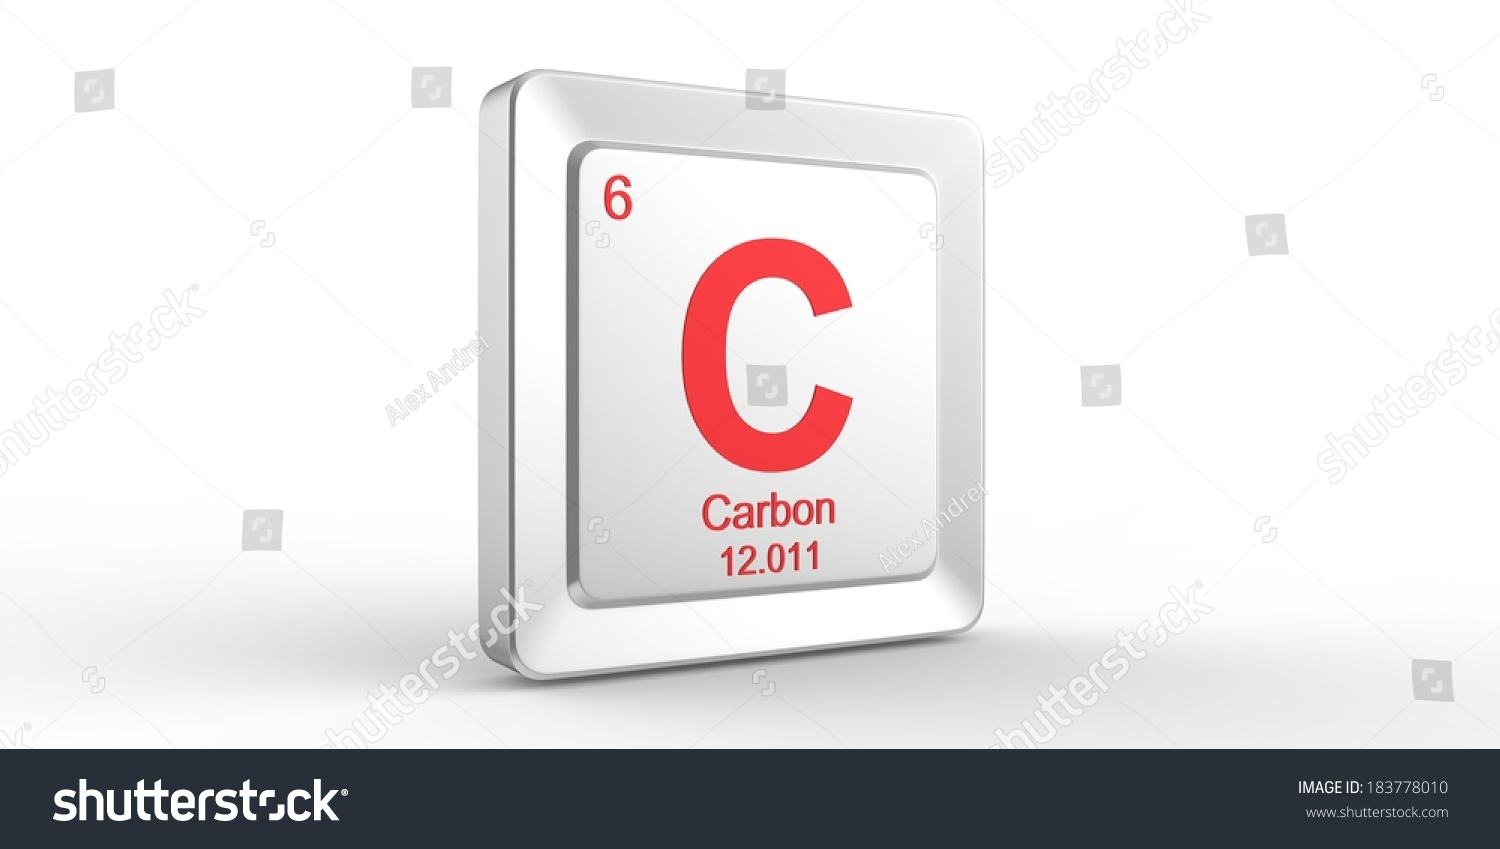 C symbol 6 material carbon chemical stock illustration 183778010 c symbol 6 material for carbon chemical element of the periodic table gamestrikefo Gallery